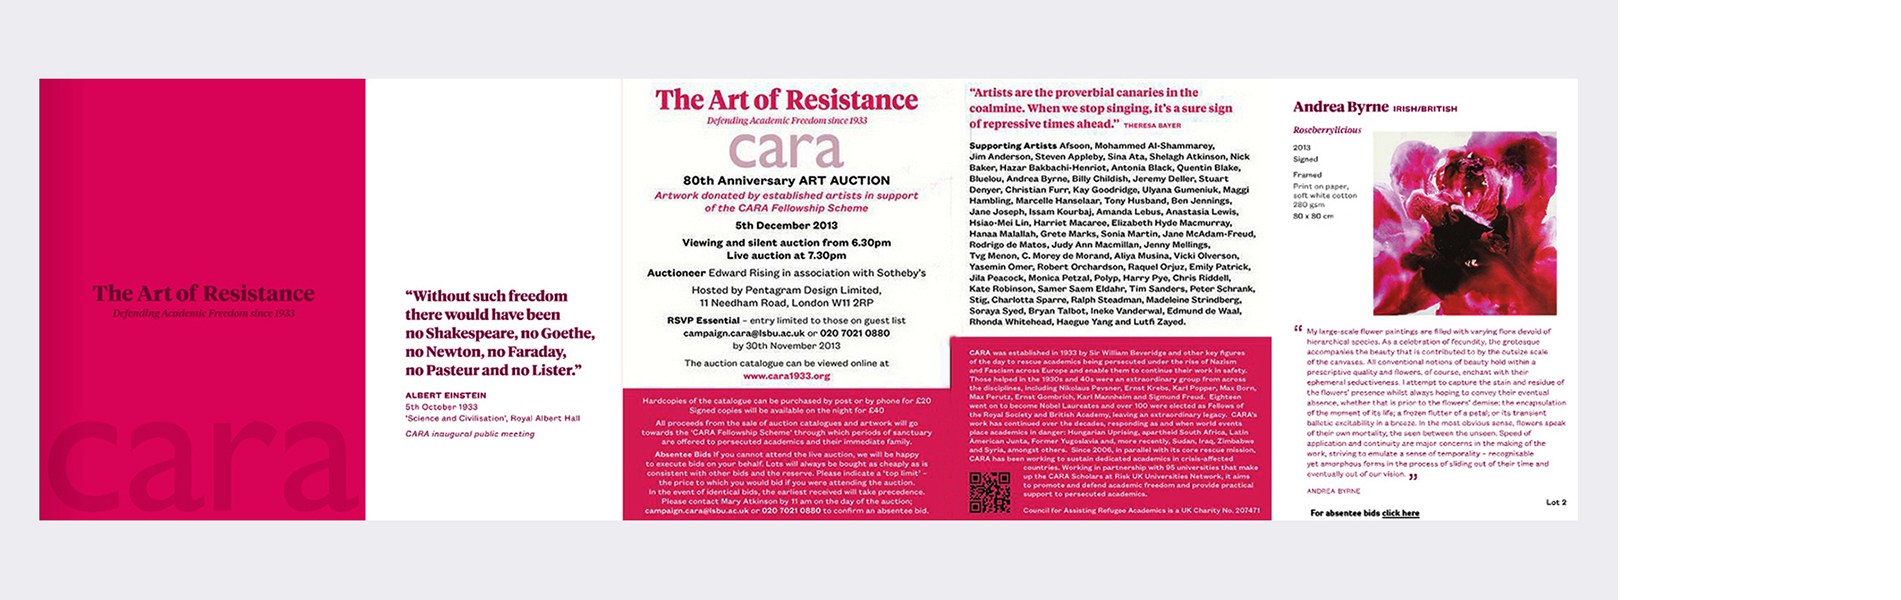 C.A.R.A. (Defending Academic Freedom since 1933) The Art of Resistance Auction (2013)